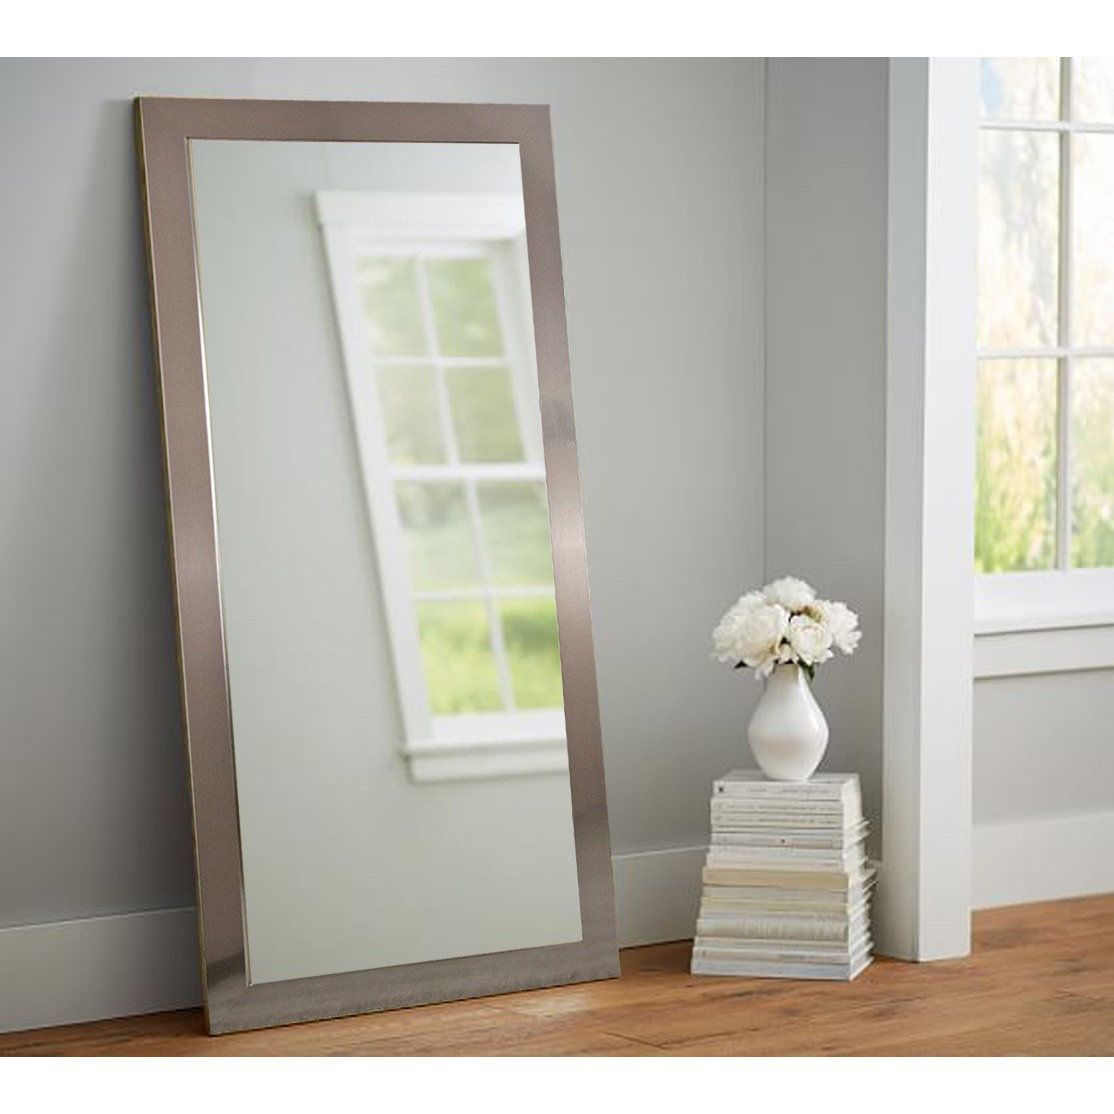 American Value Nickel Finished 32 X 65.5 Inch Tall Vanity Regarding Dalessio Wide Tall Full Length Mirrors (Photo 18 of 20)